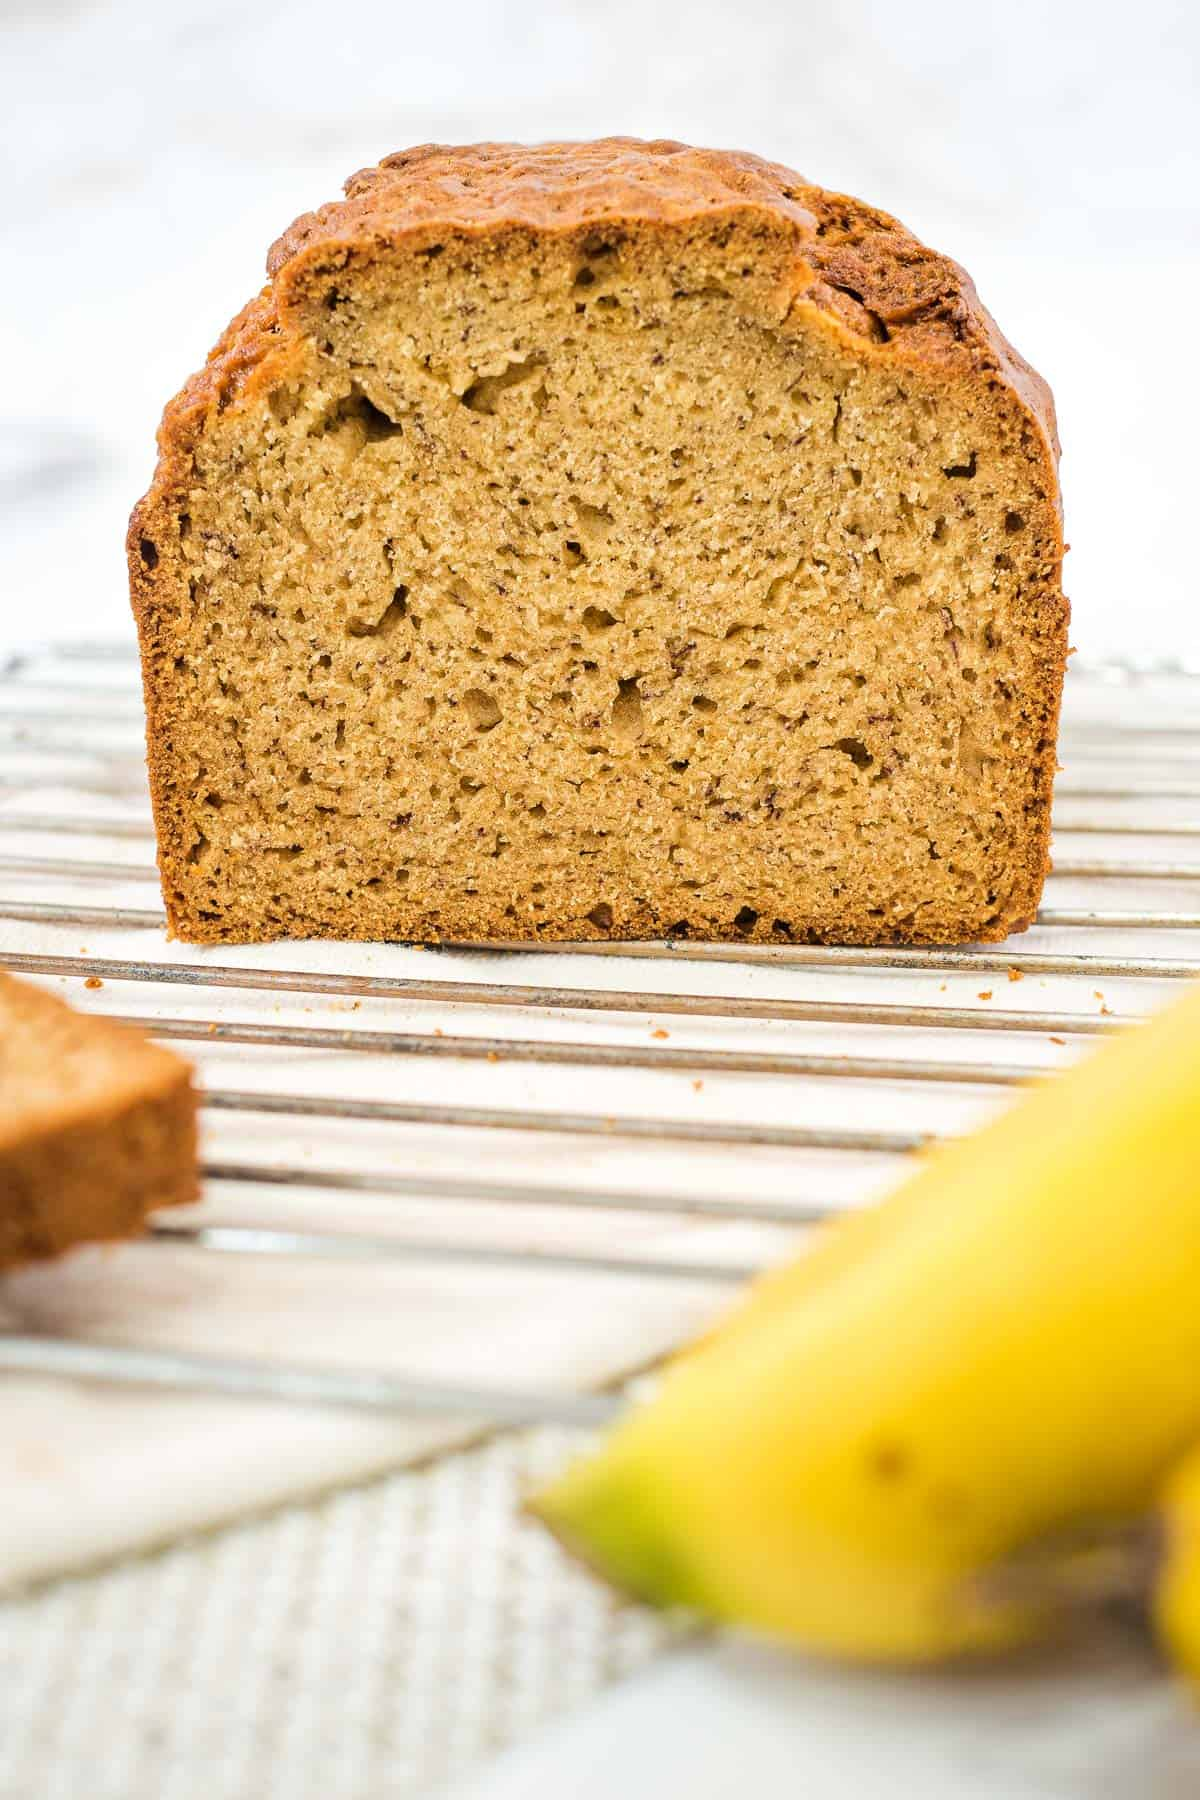 The front of a banana bread loaf after slicing